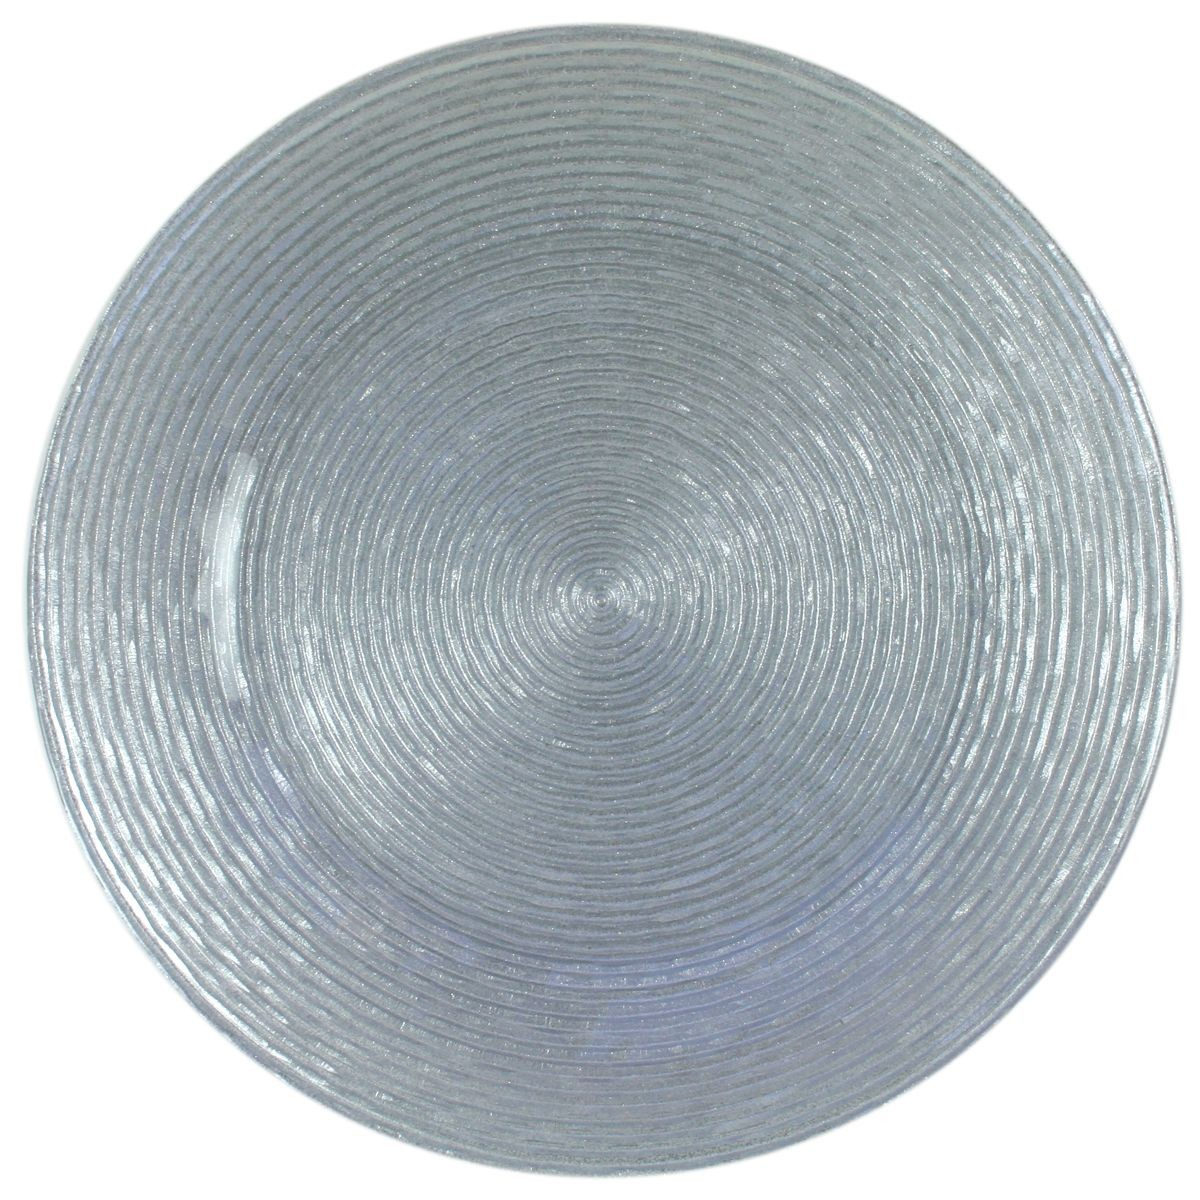 The Jay Companies 1470063 Round Circus Silver Glitter Glass Charger Plate 13""